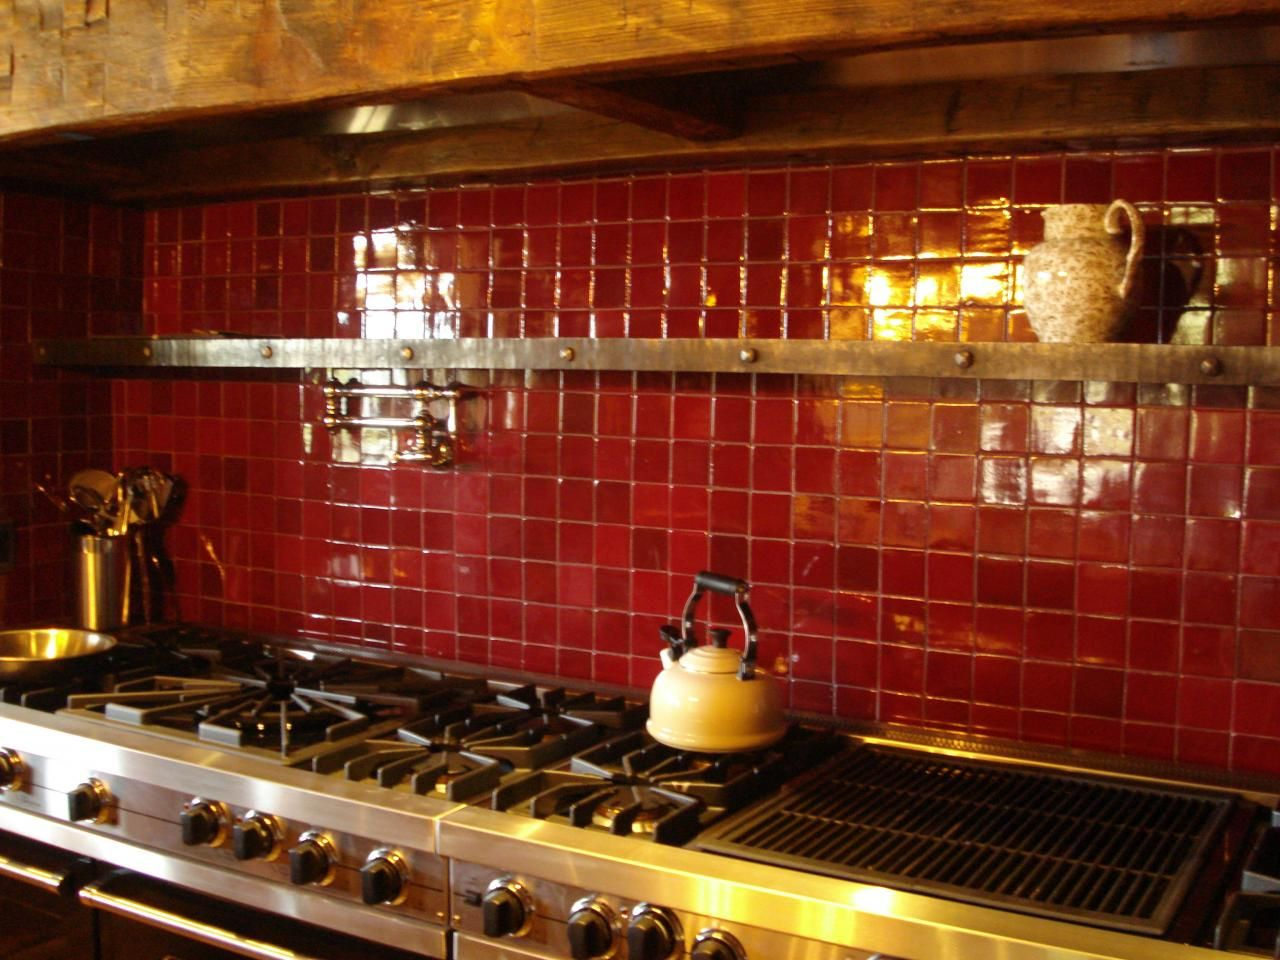 Kitchen Design Red Tiles kitchen back splashes | kitchen remodel designs: red kitchen